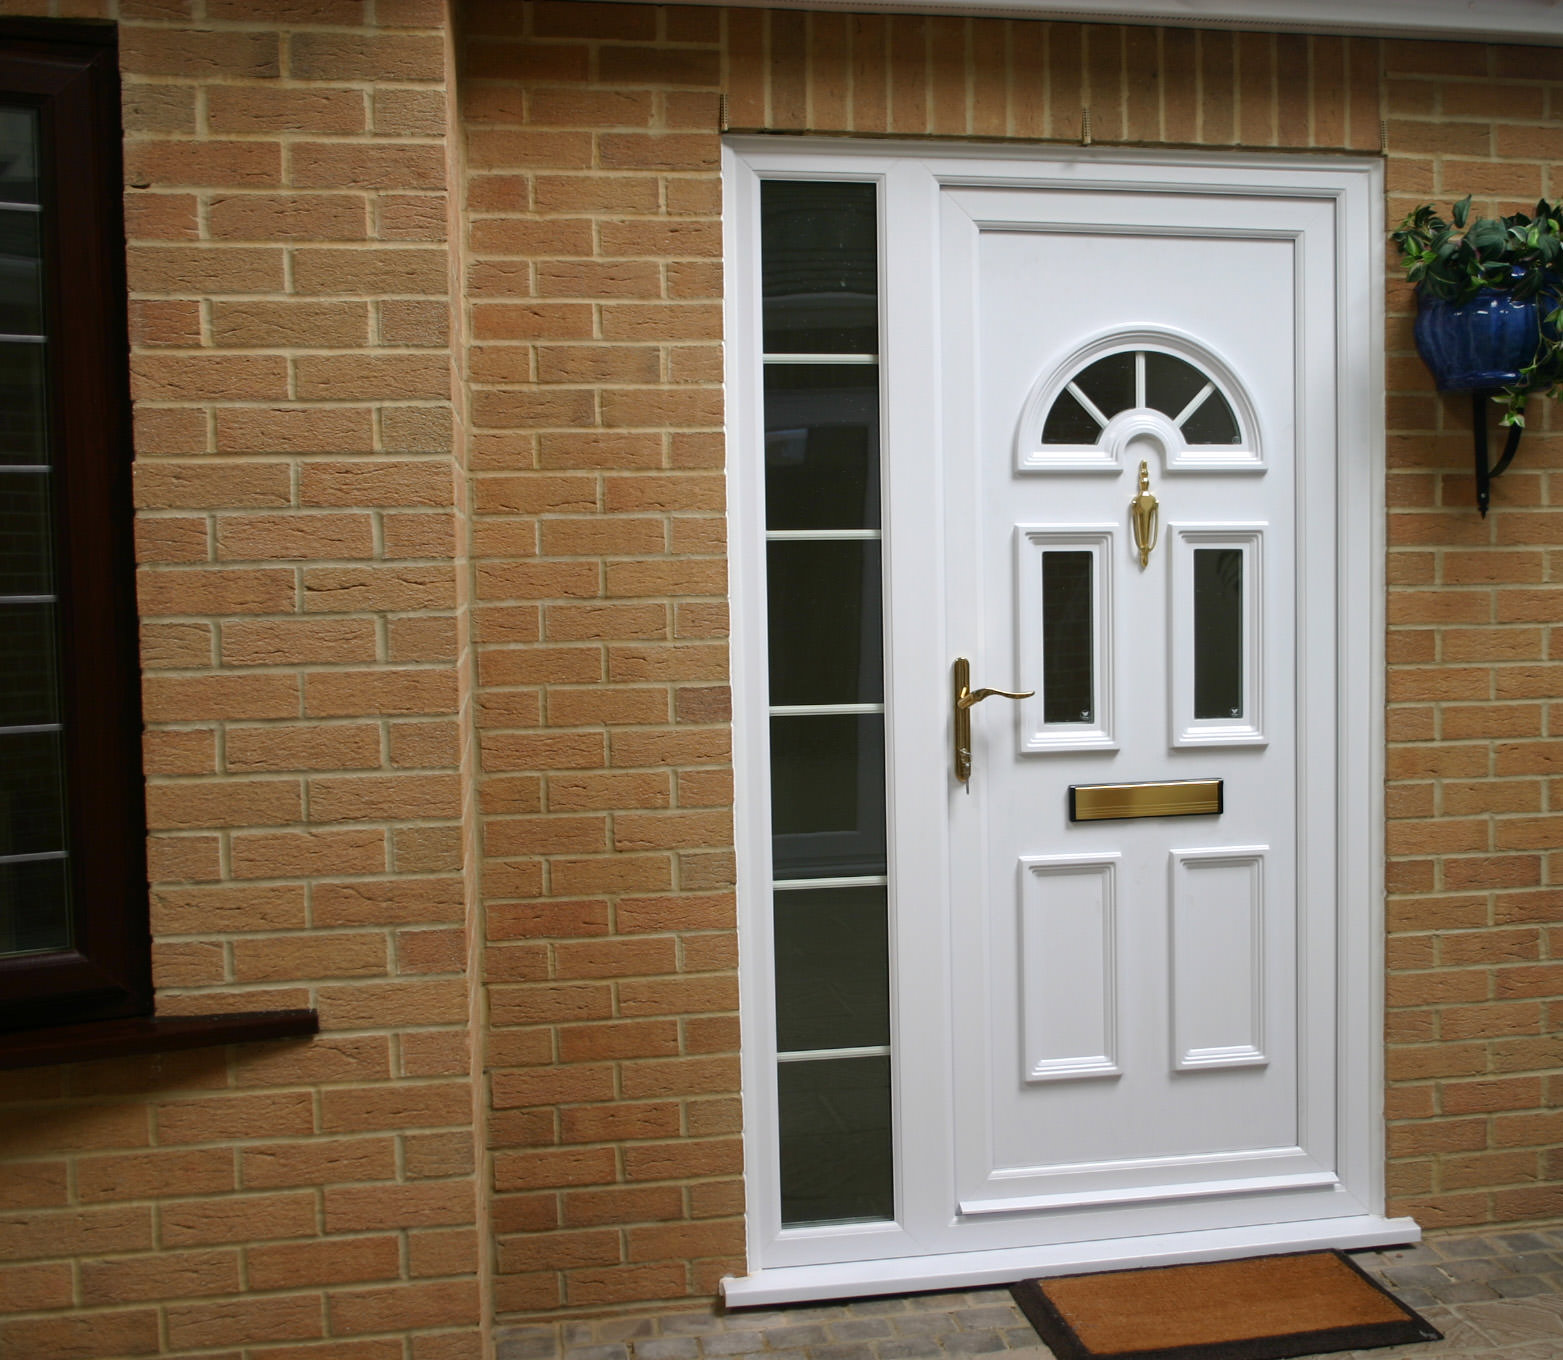 Upvc doors harrogate double glazed doors front door for Upvc windows and doors